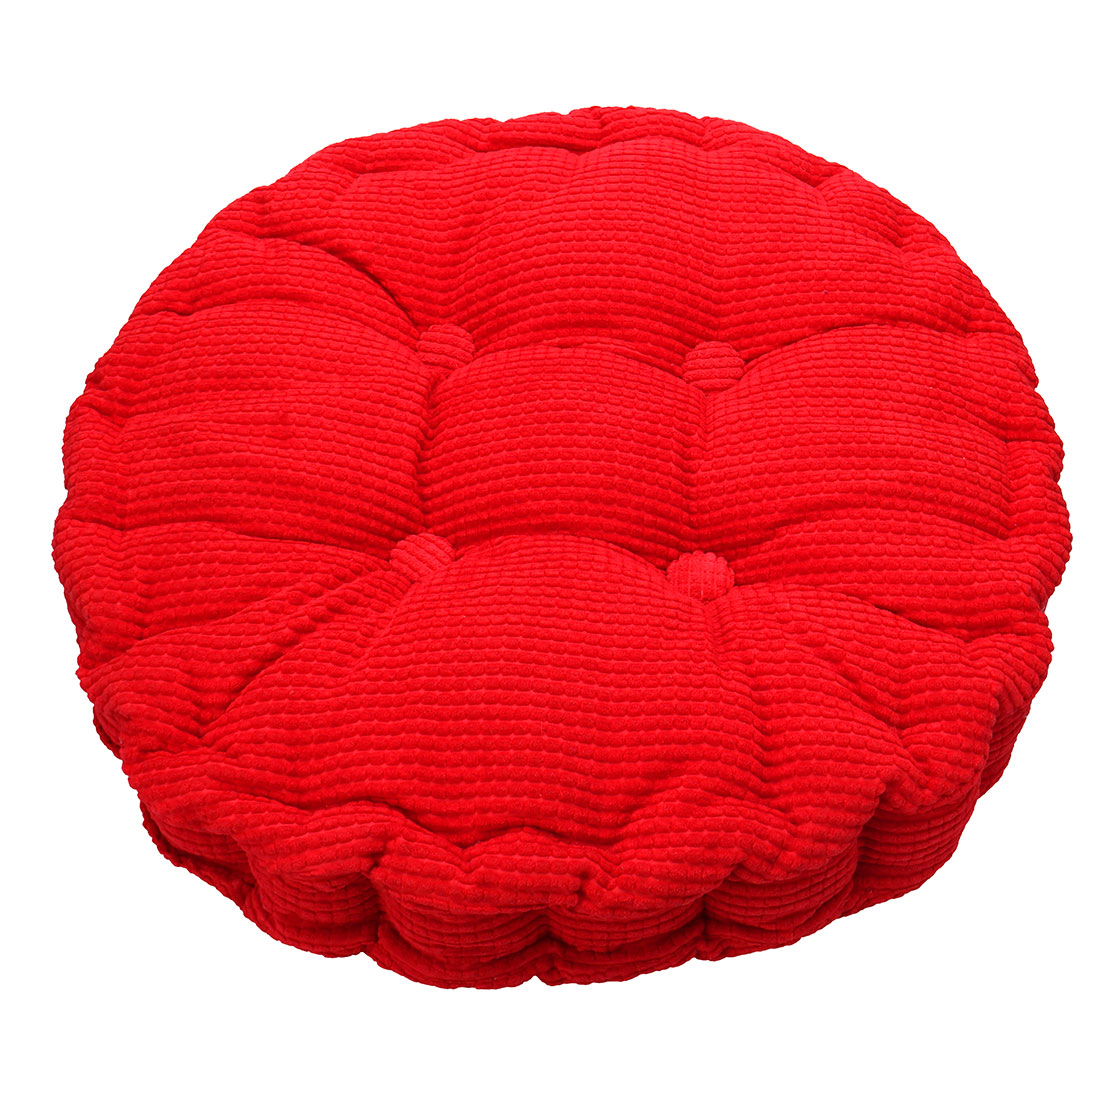 Household Corduroy Round Shaped Thickened Seat Chair Cushion Pad Cover Red